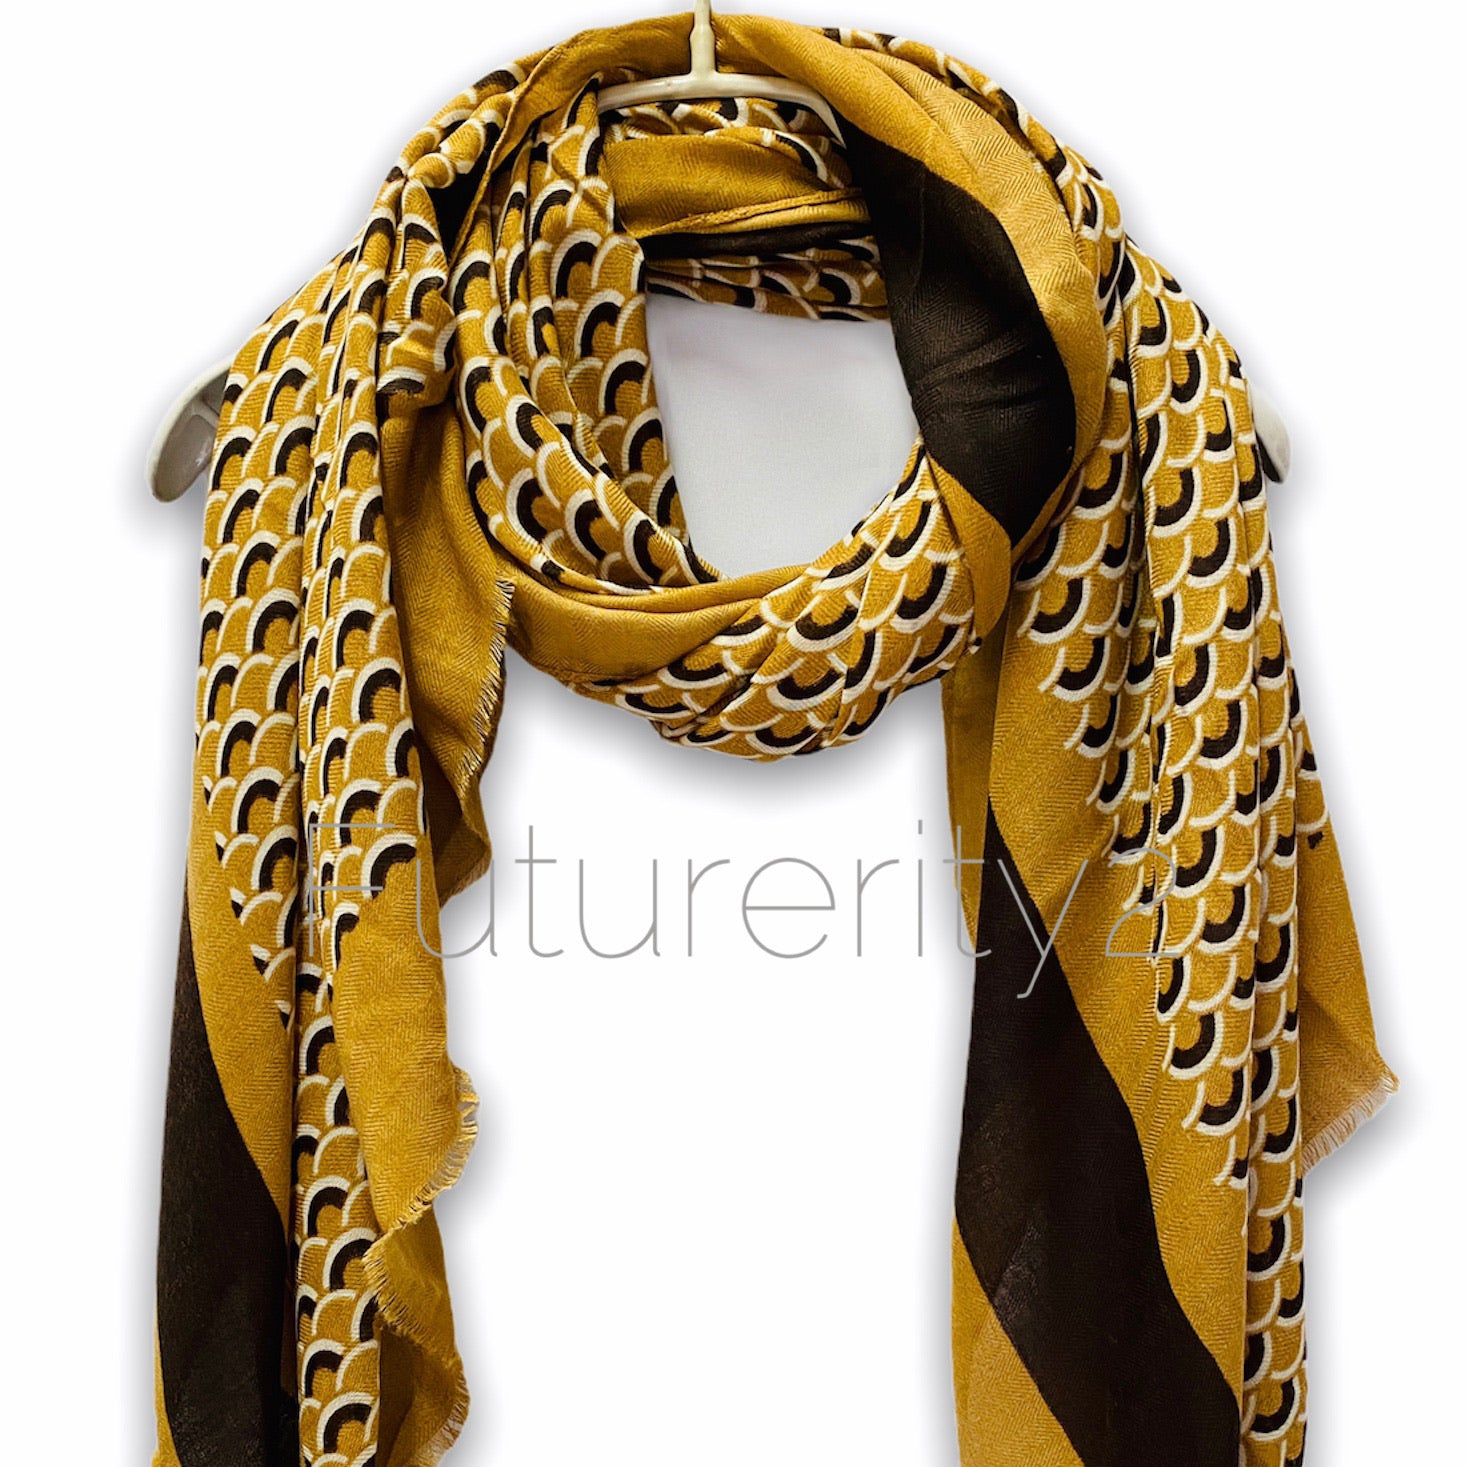 Fish Scale Pattern With Black Trim Yellow Cotton Scarf